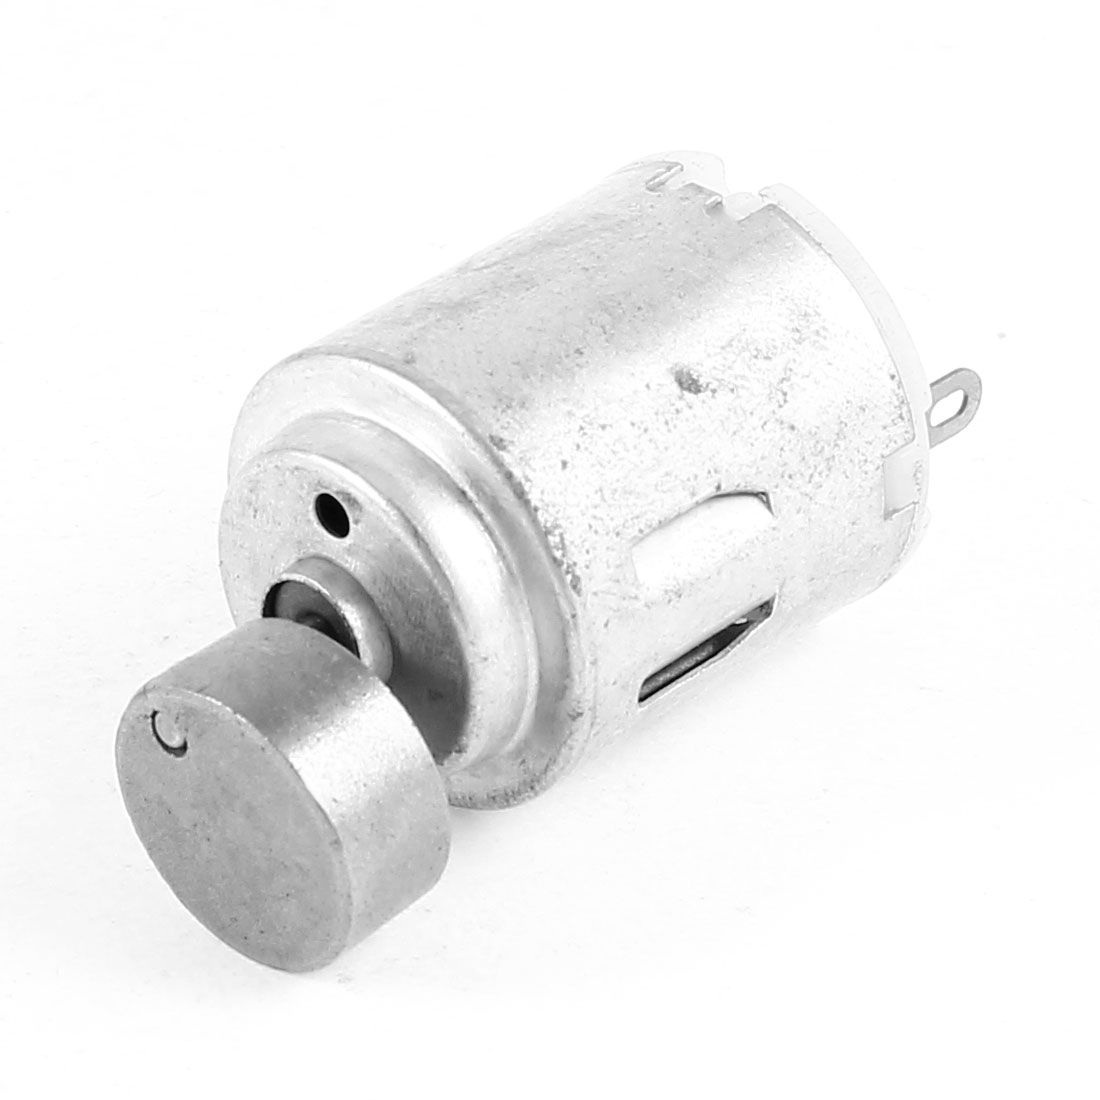 DC 1.5-6V 5200RPM Mini Vibration Vibrating Motor 20x25mm for Toys Massage Device